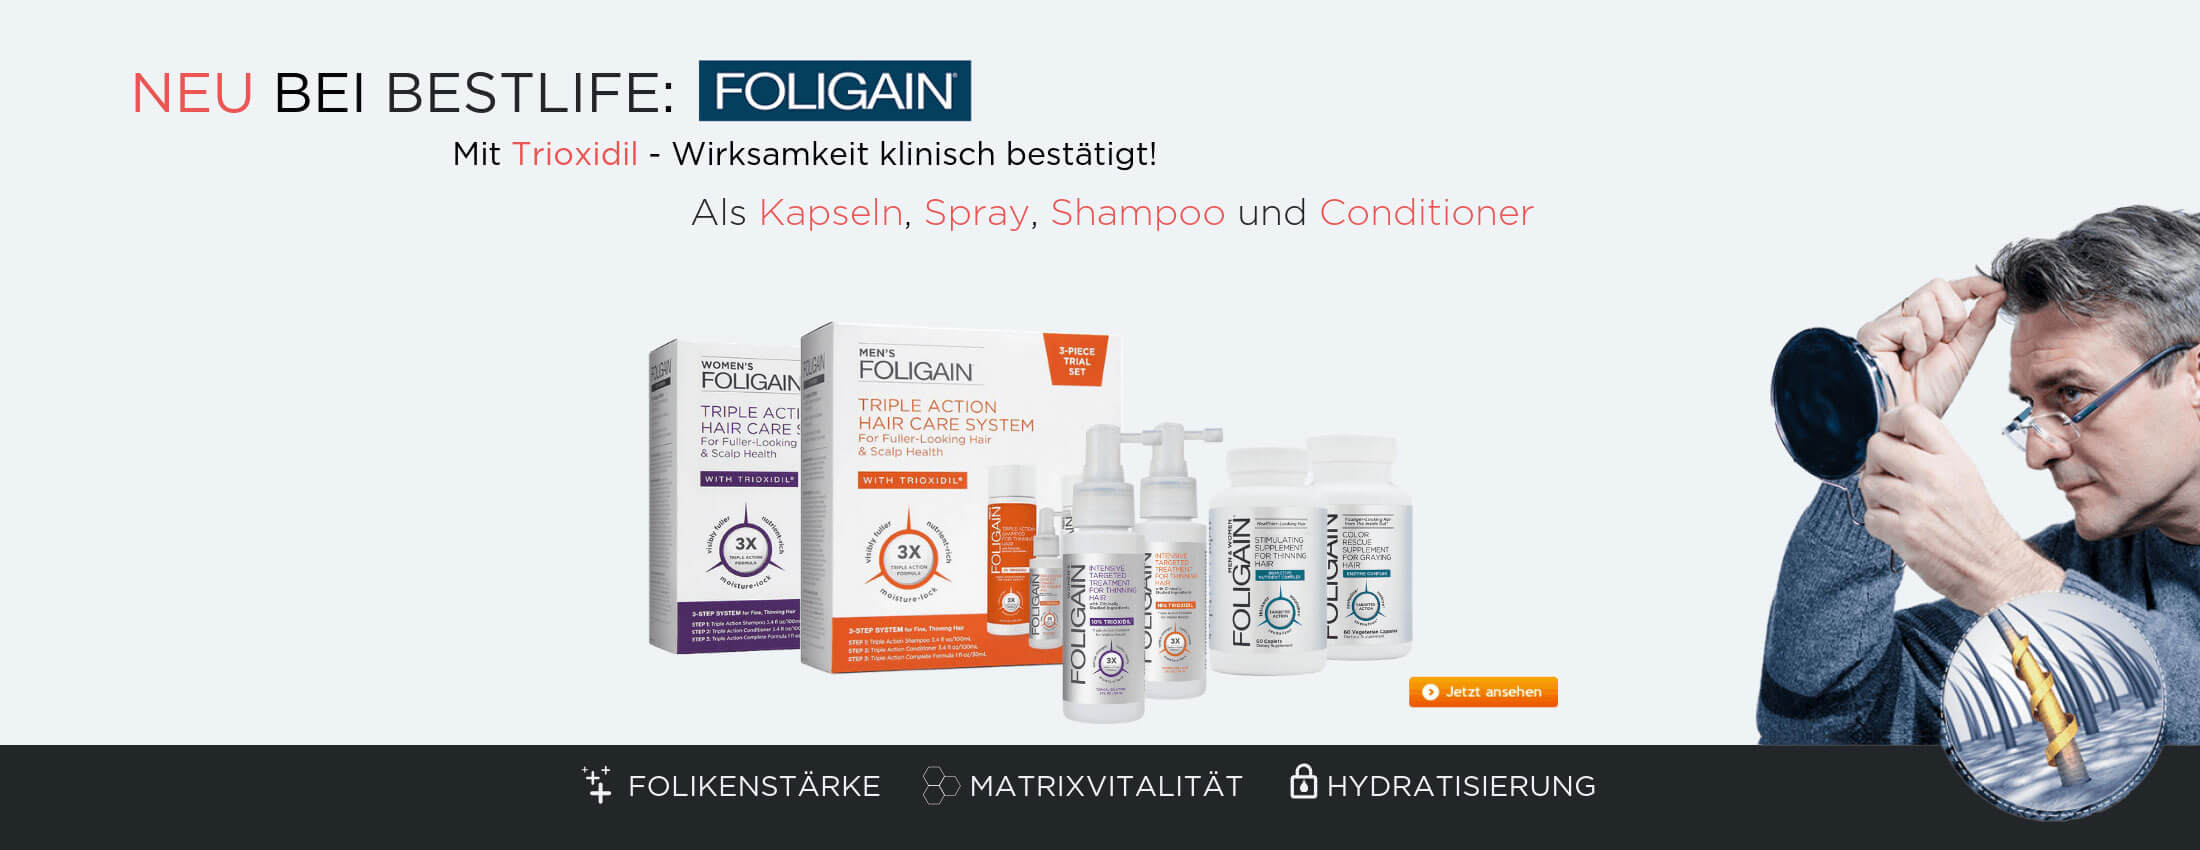 Foligain